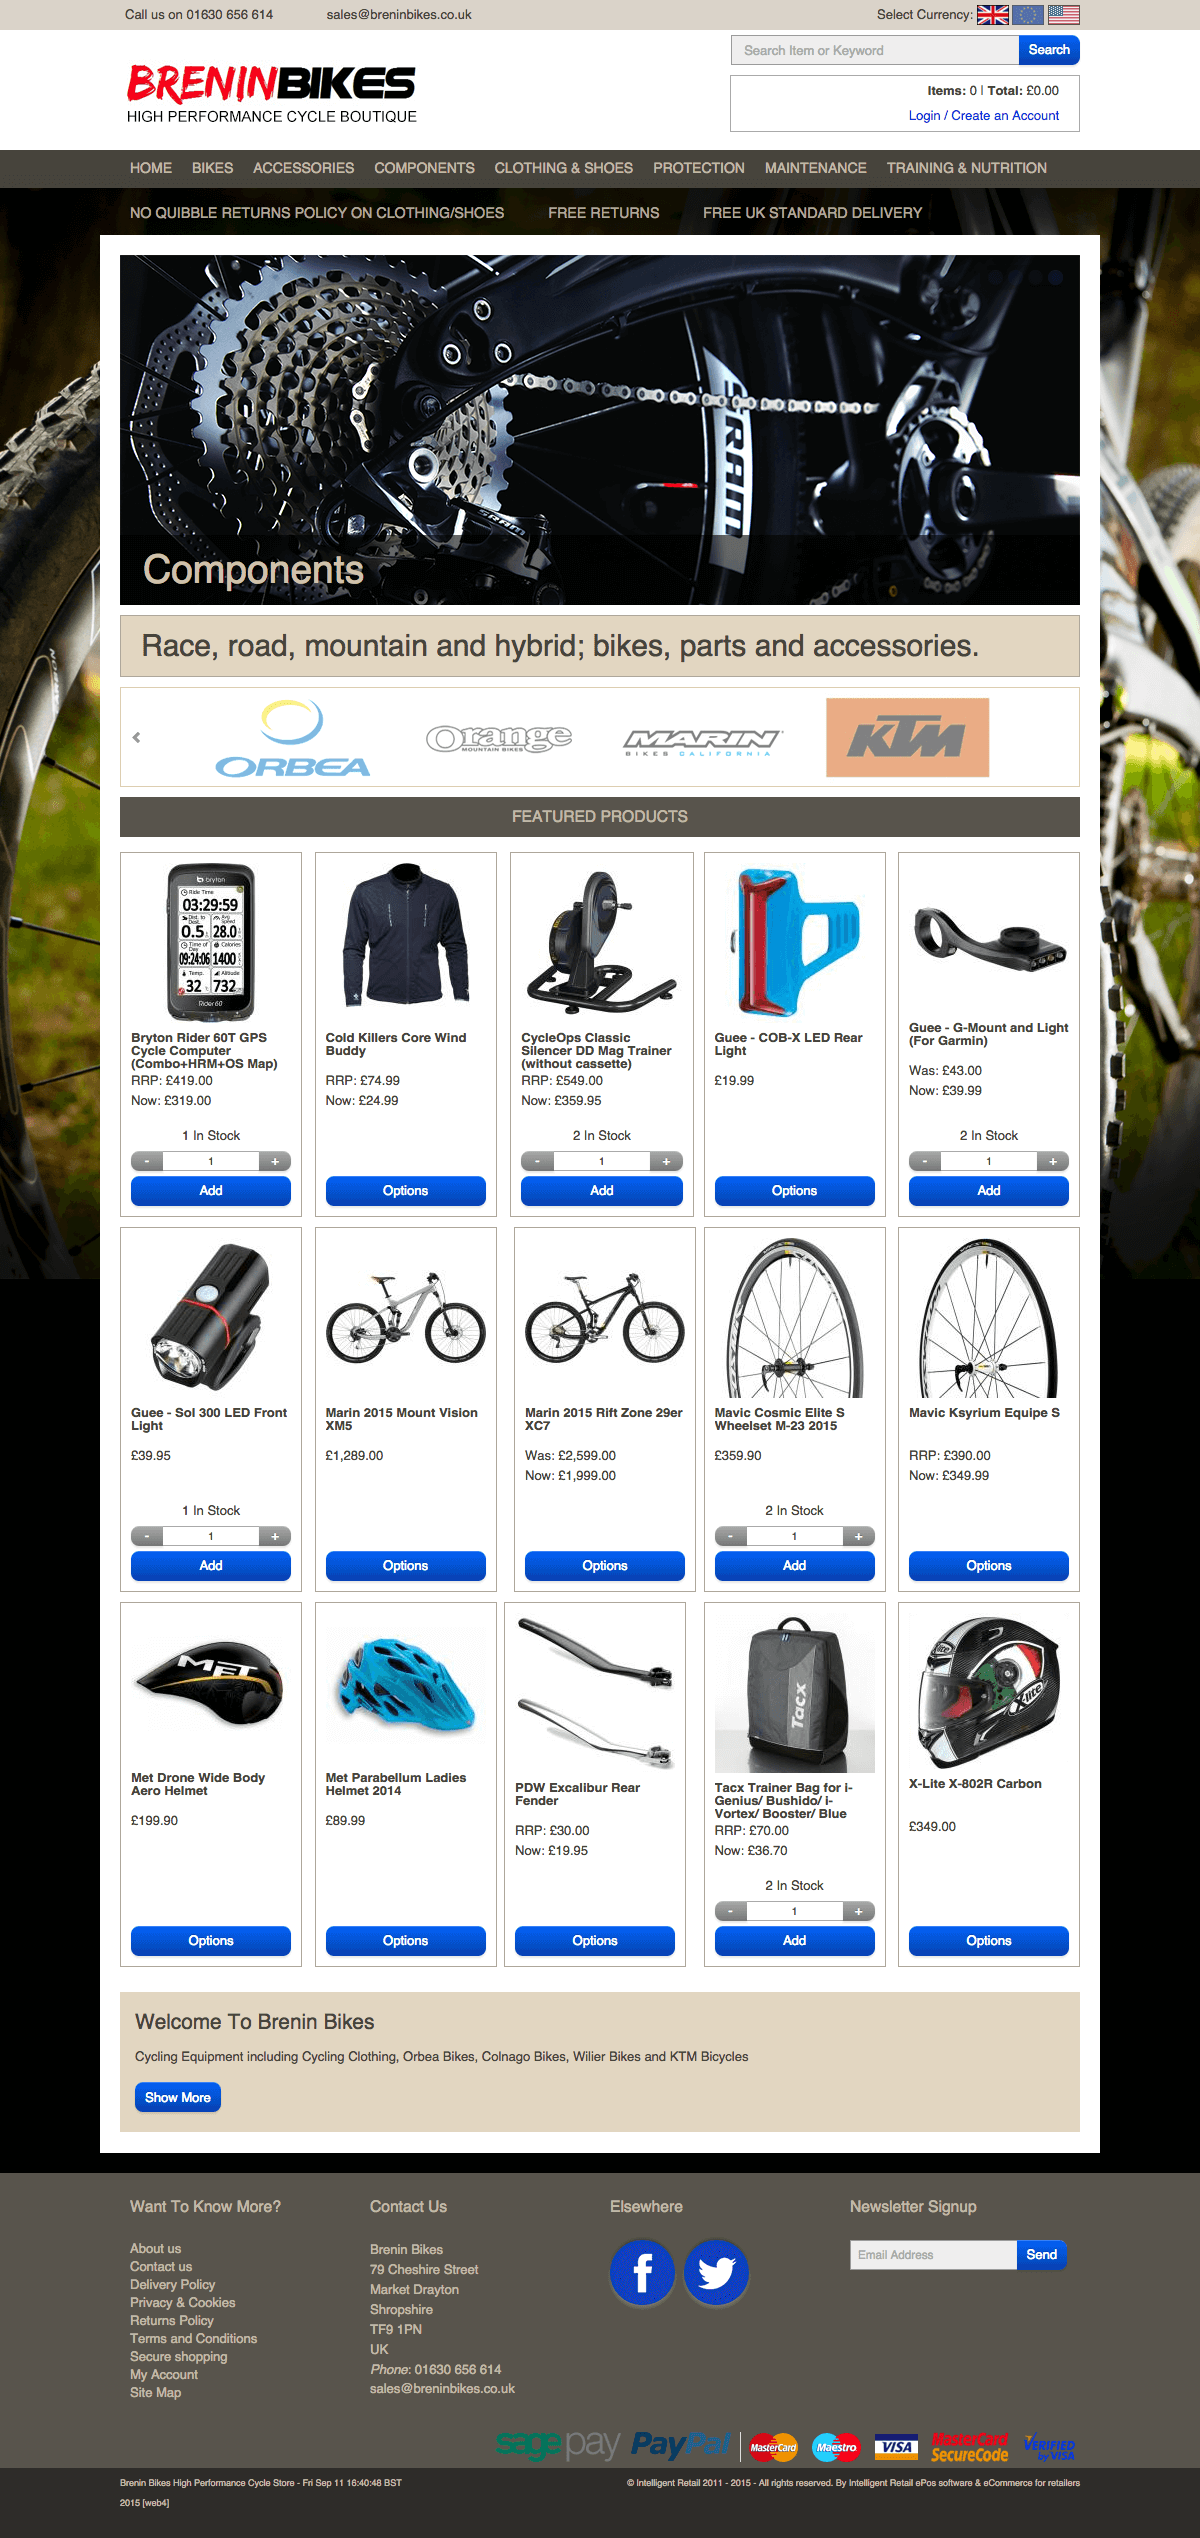 Brenin Bikes - Home page